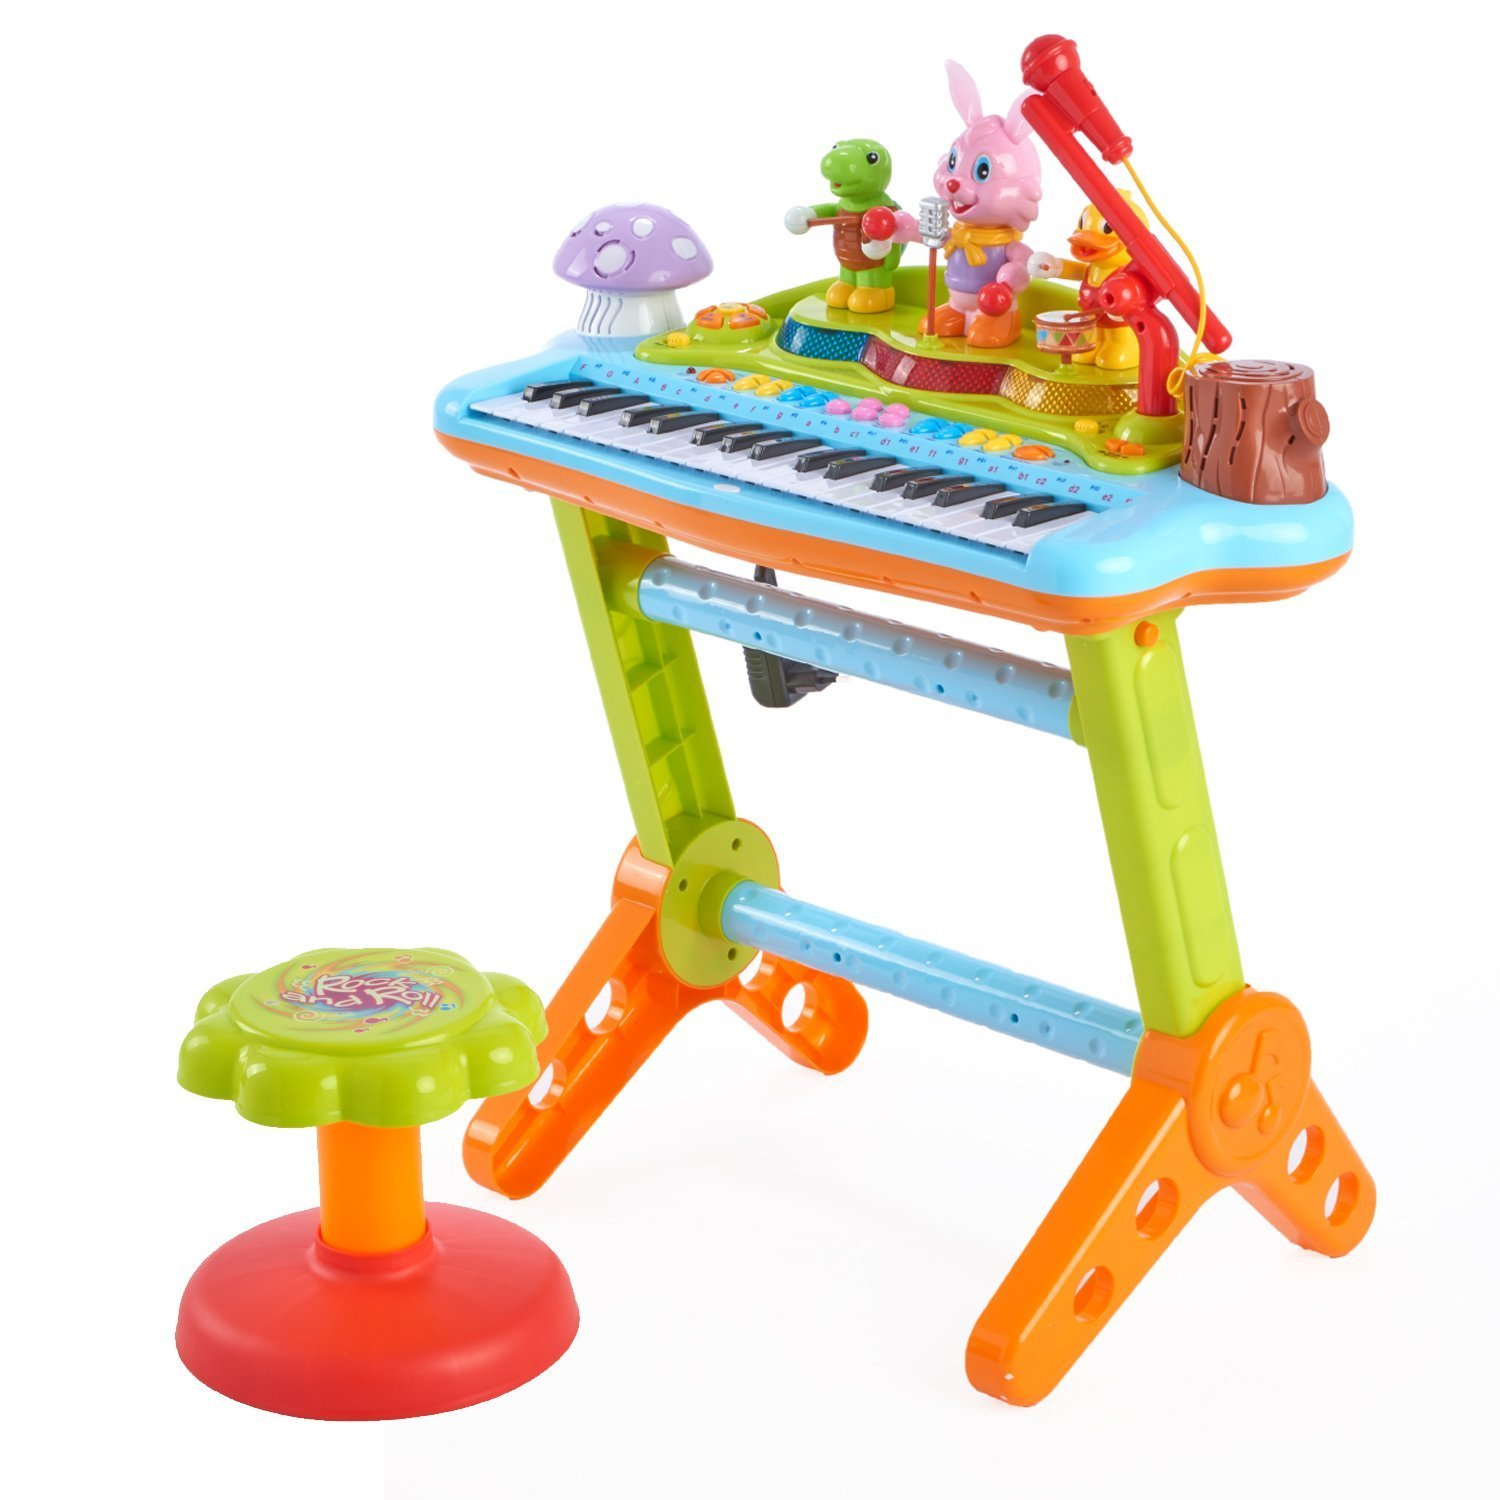 Woby Musical Kids Electronic Keyboard kids Piano 37 Keys with Microphone Musical toy Keyboard Instrument Stool